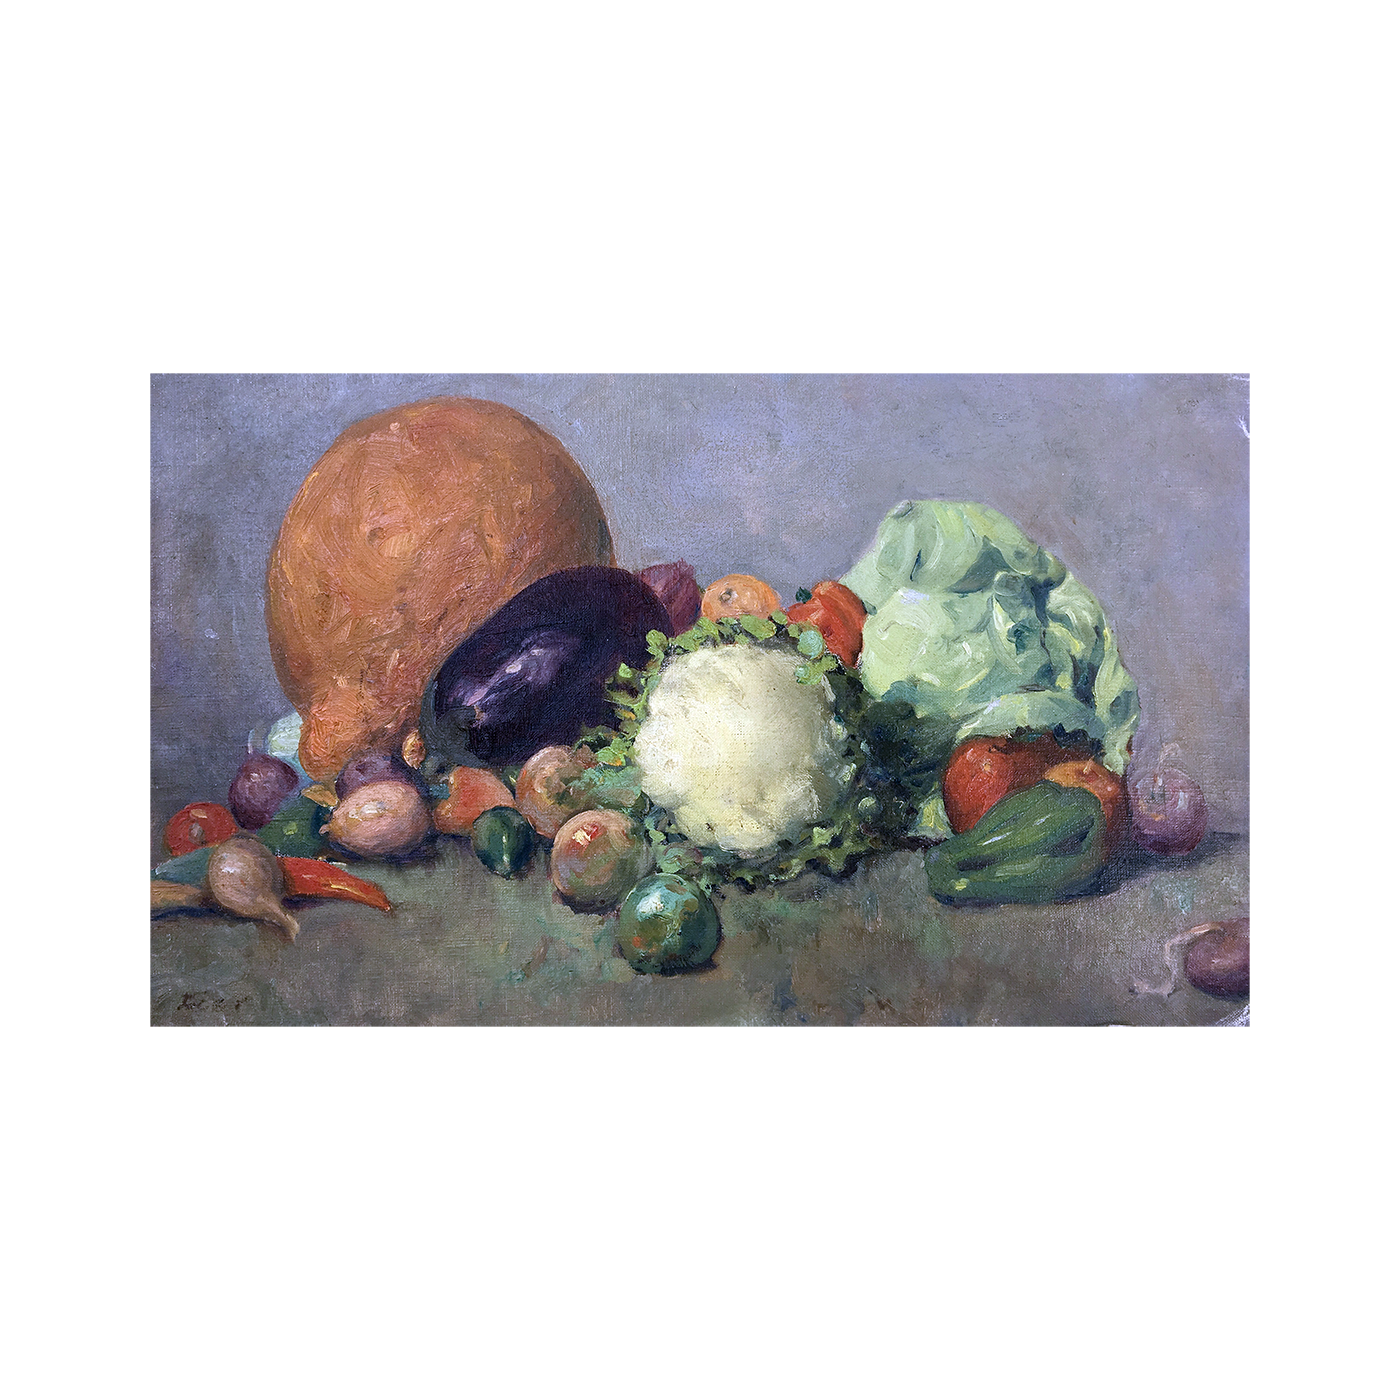 American school still life painting : Still life with vegetables, ca.1940s.